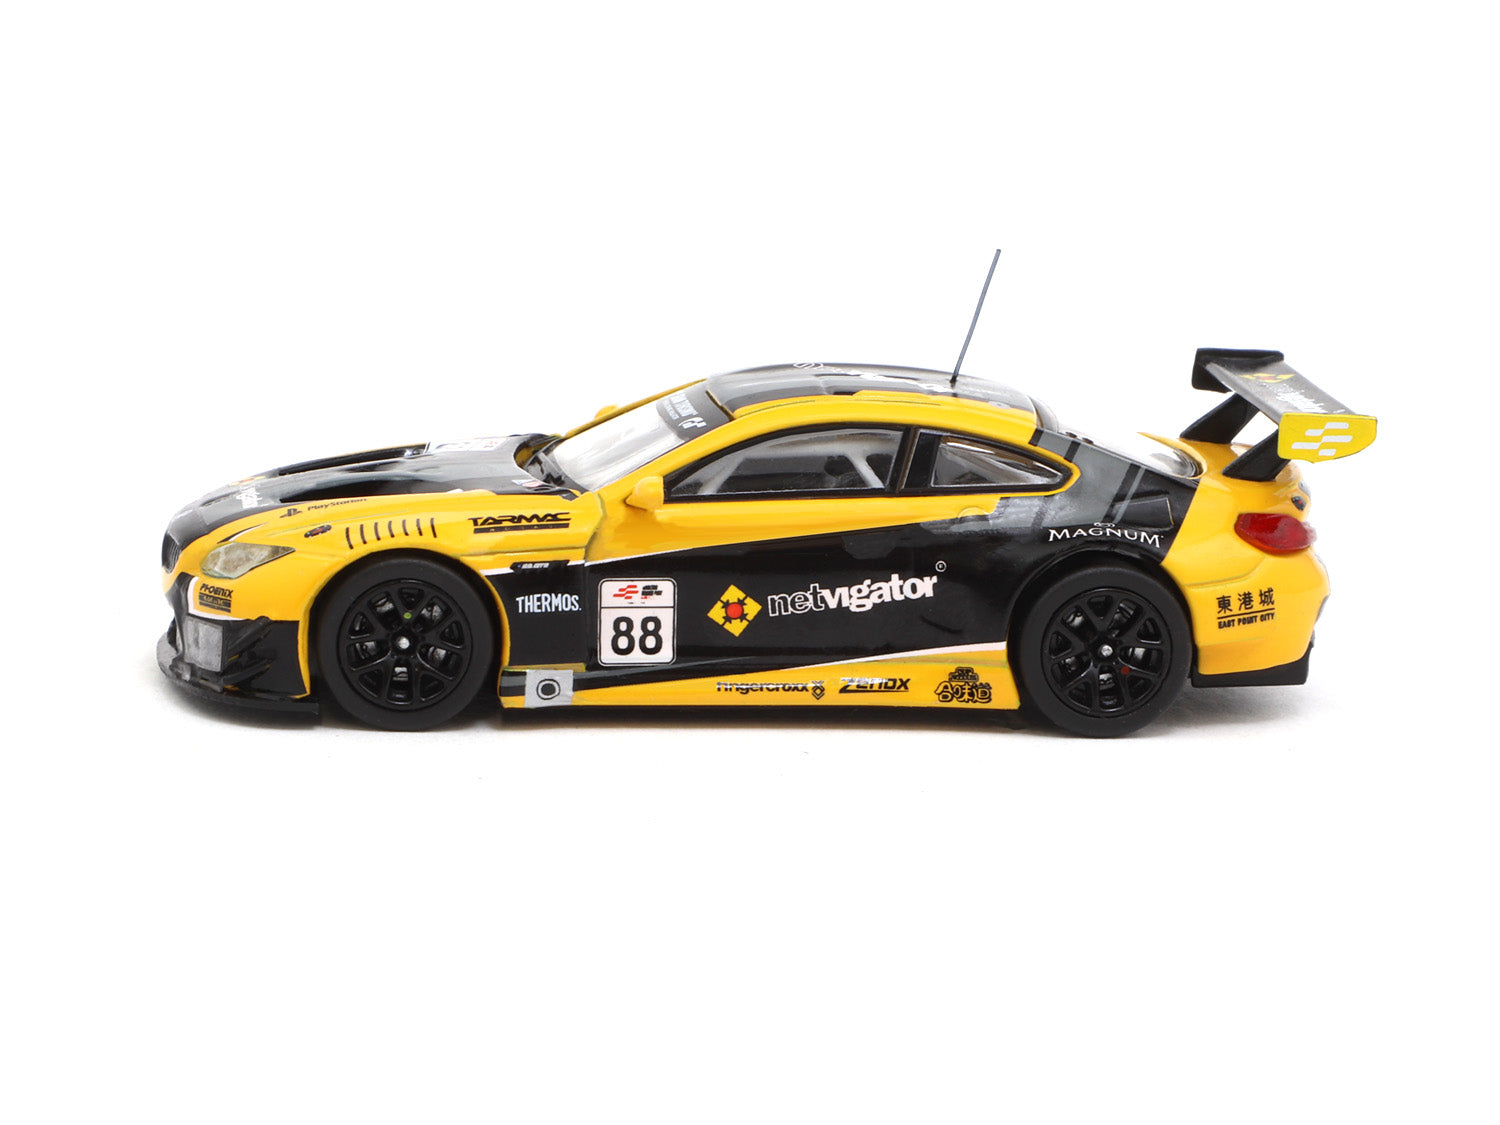 Tarmac Works 1//64 BMW M6 GT3 eRacing Grand Prix HK #88 Hobby64 #T64-020-eRGP18NE